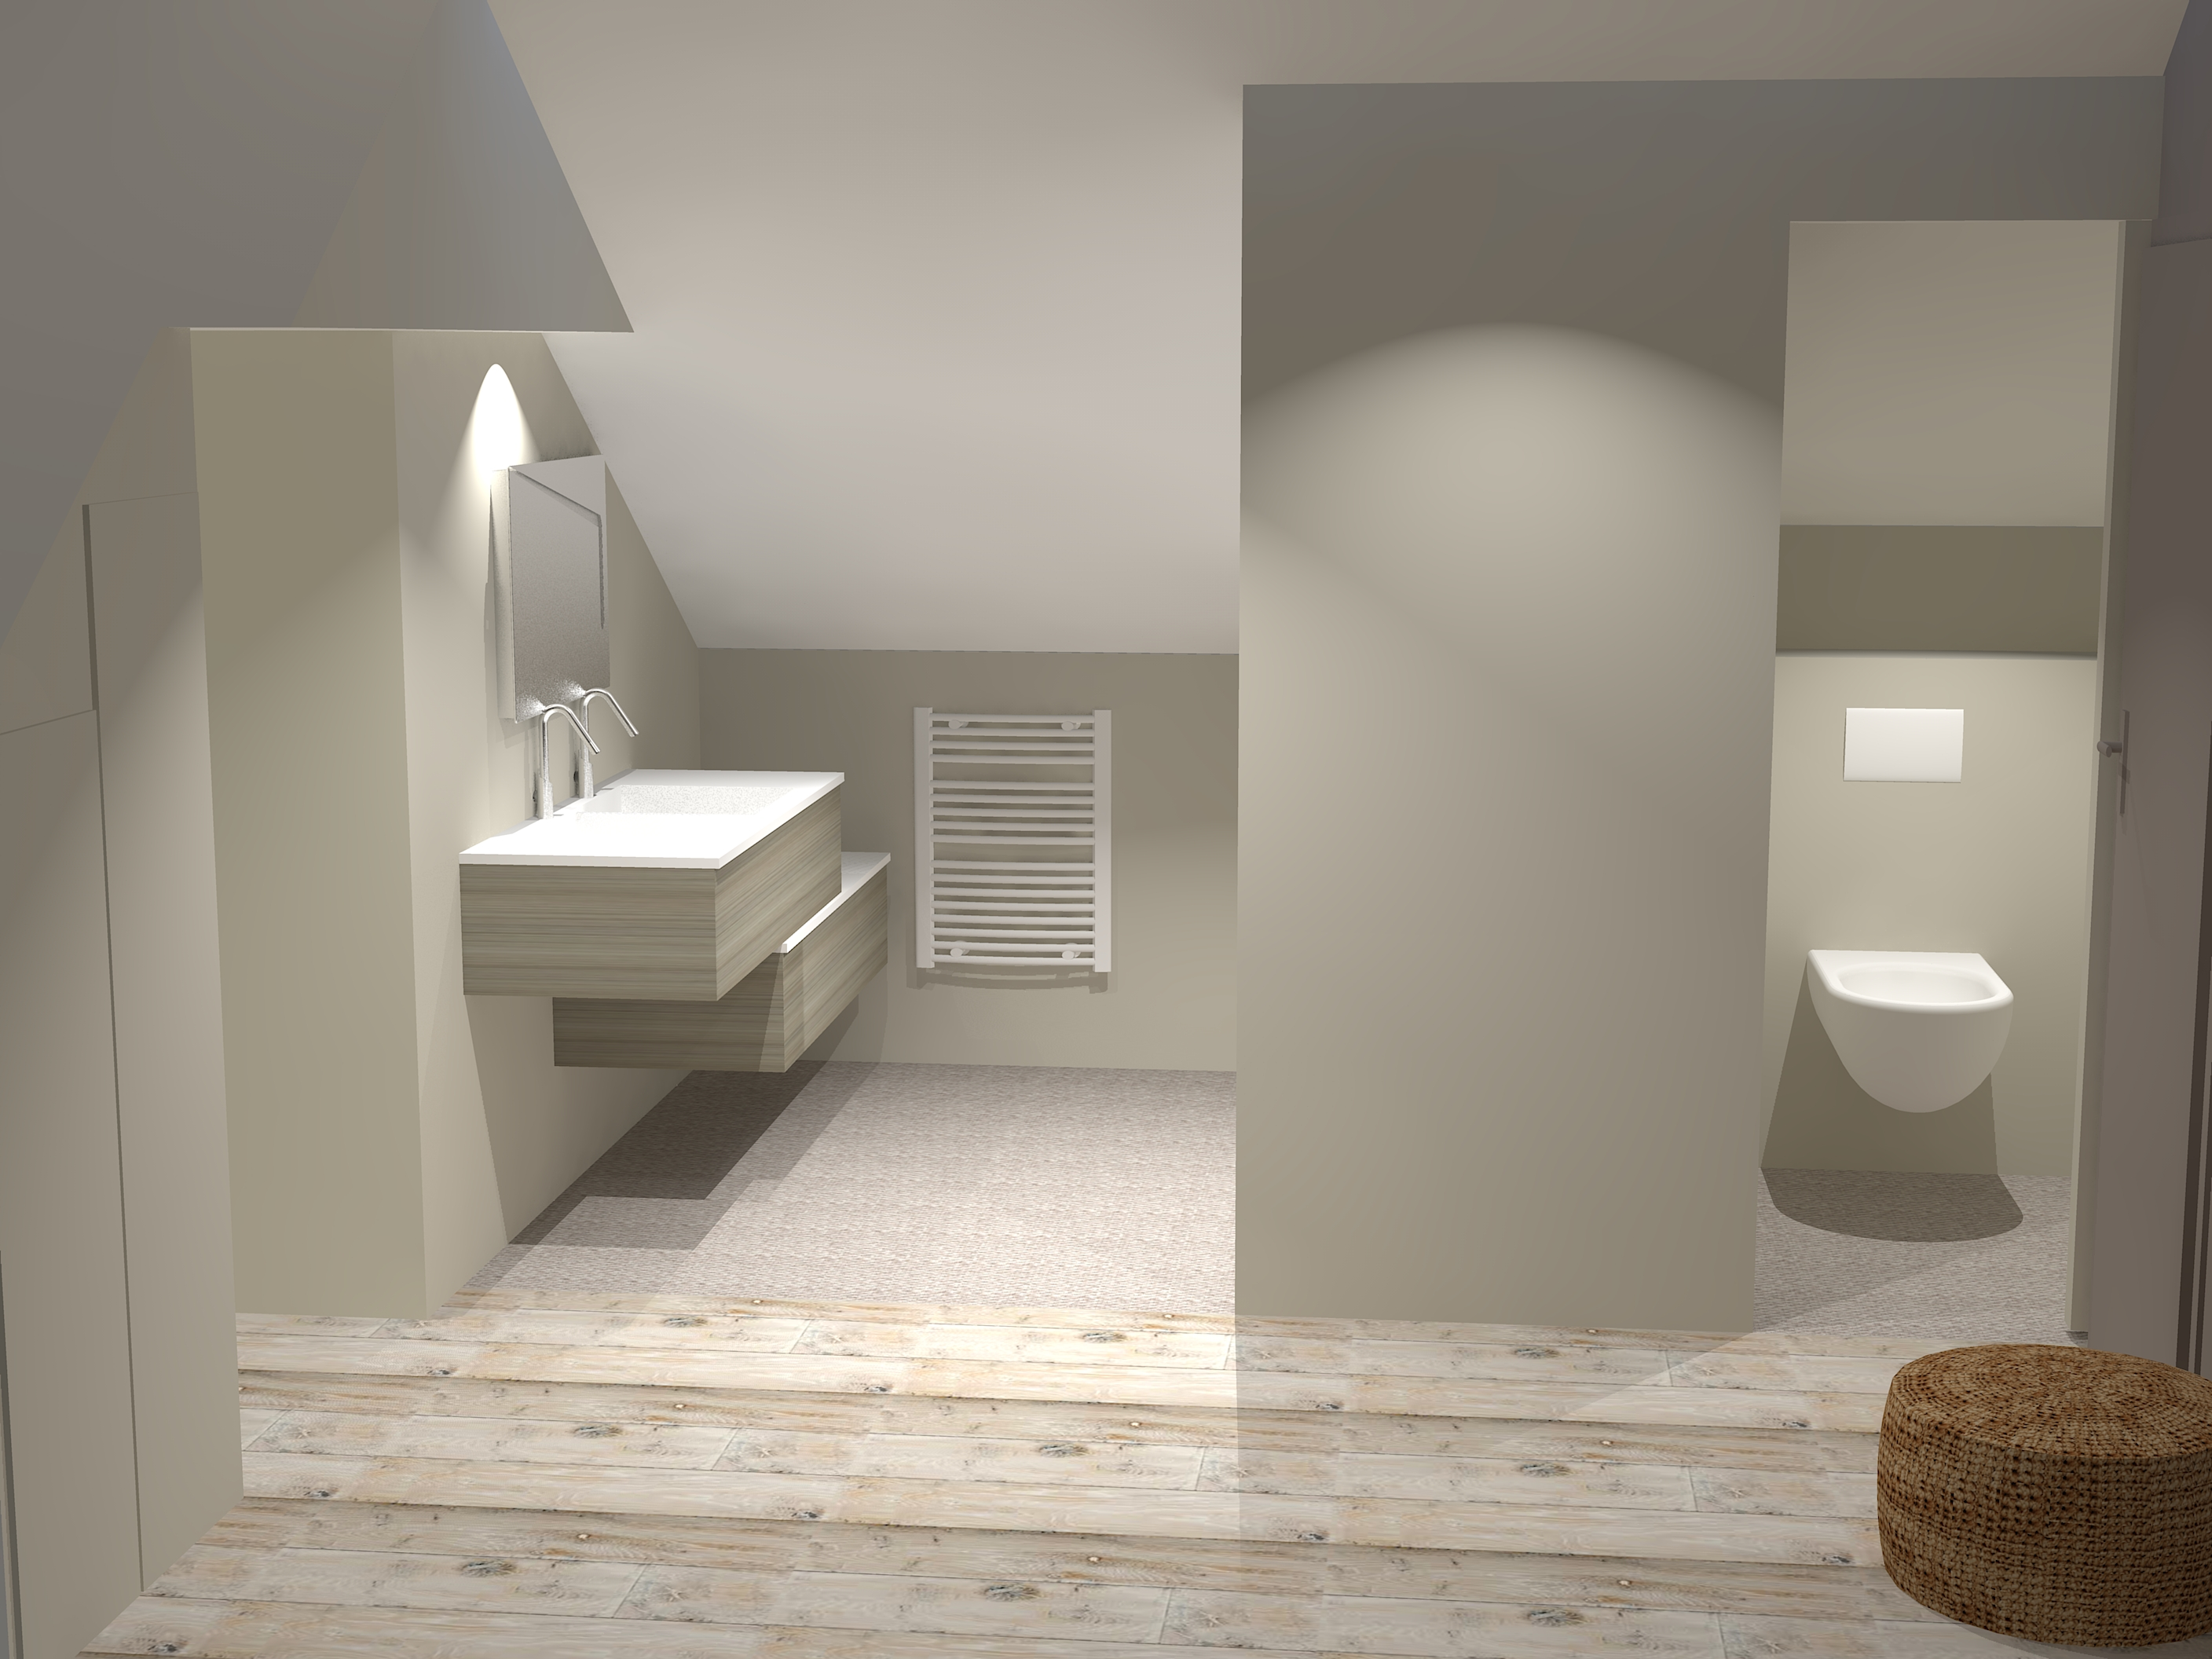 Des combles r habilit s en suite parentale caroline for Amenagement garage en suite parentale